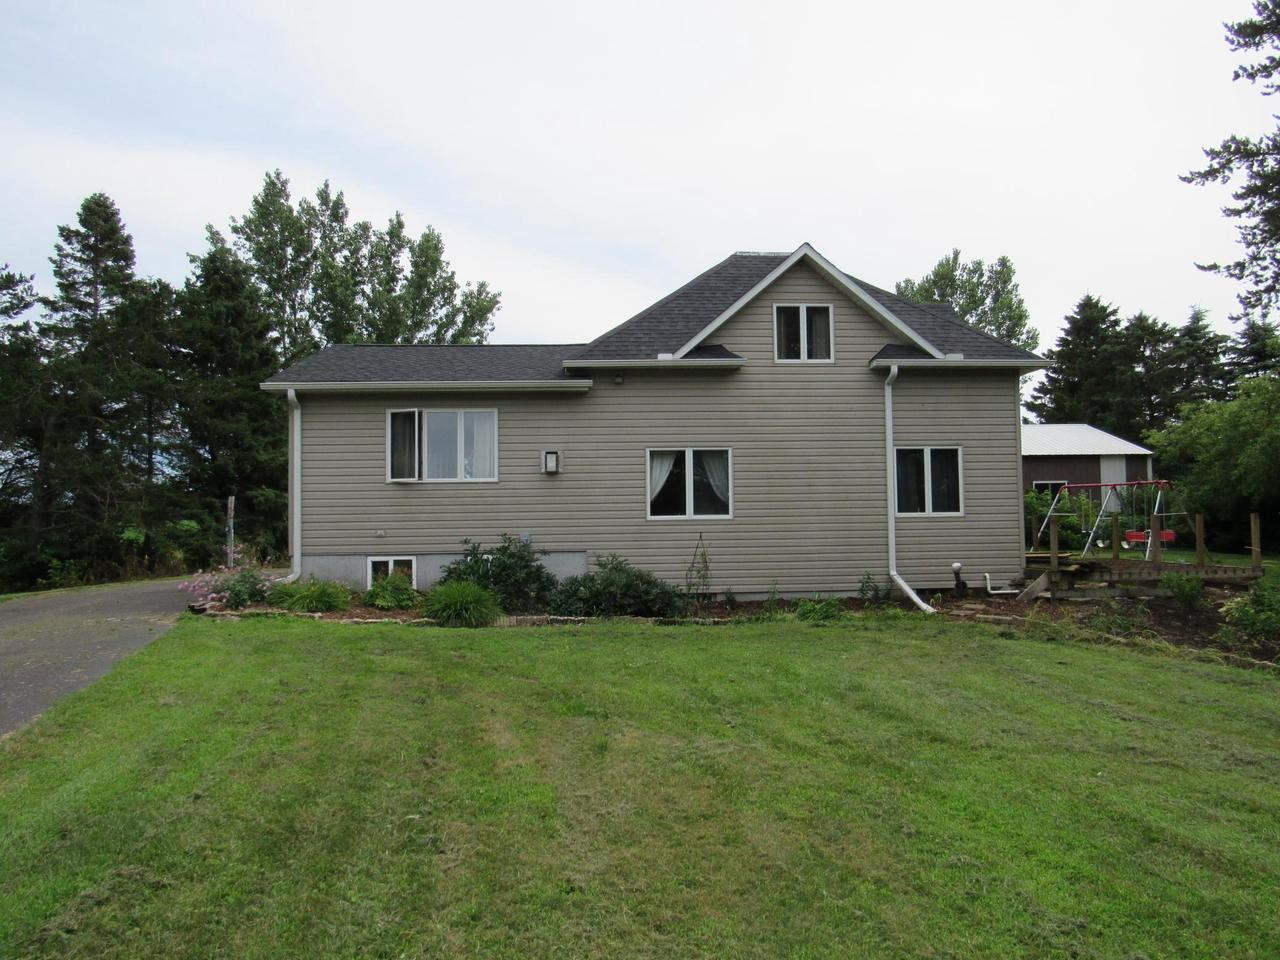 Cute country living on 5 acres, open kitchen/dining room with upgrades, huge living room with fireplace, basement has large man cave/playroom. 2 upper bedrooms and bath. New septic will be done by August 2020. Large pole shed for the toys, detached garage with separate workshop. Call today!